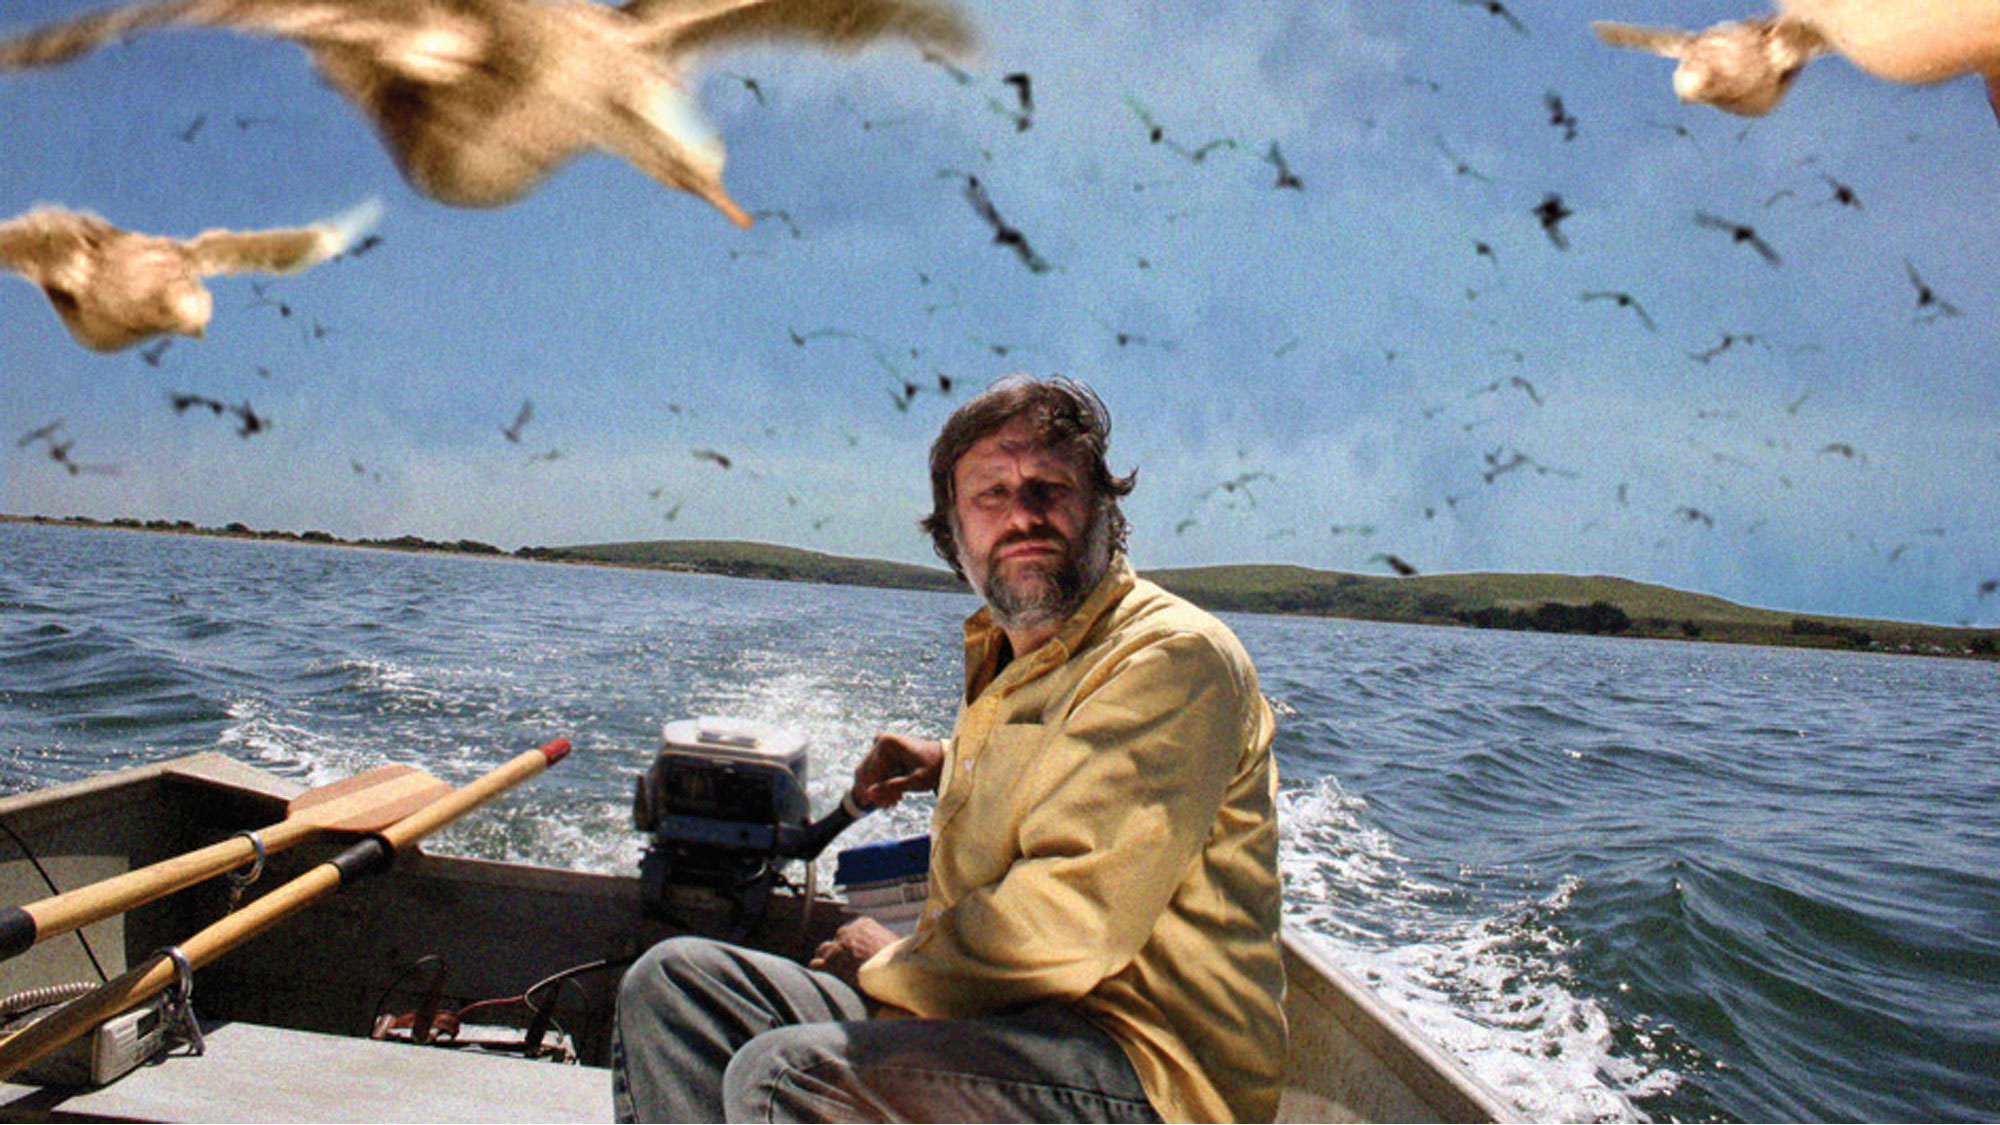 a man in a fishing boat on the ocean surrounded by gulls